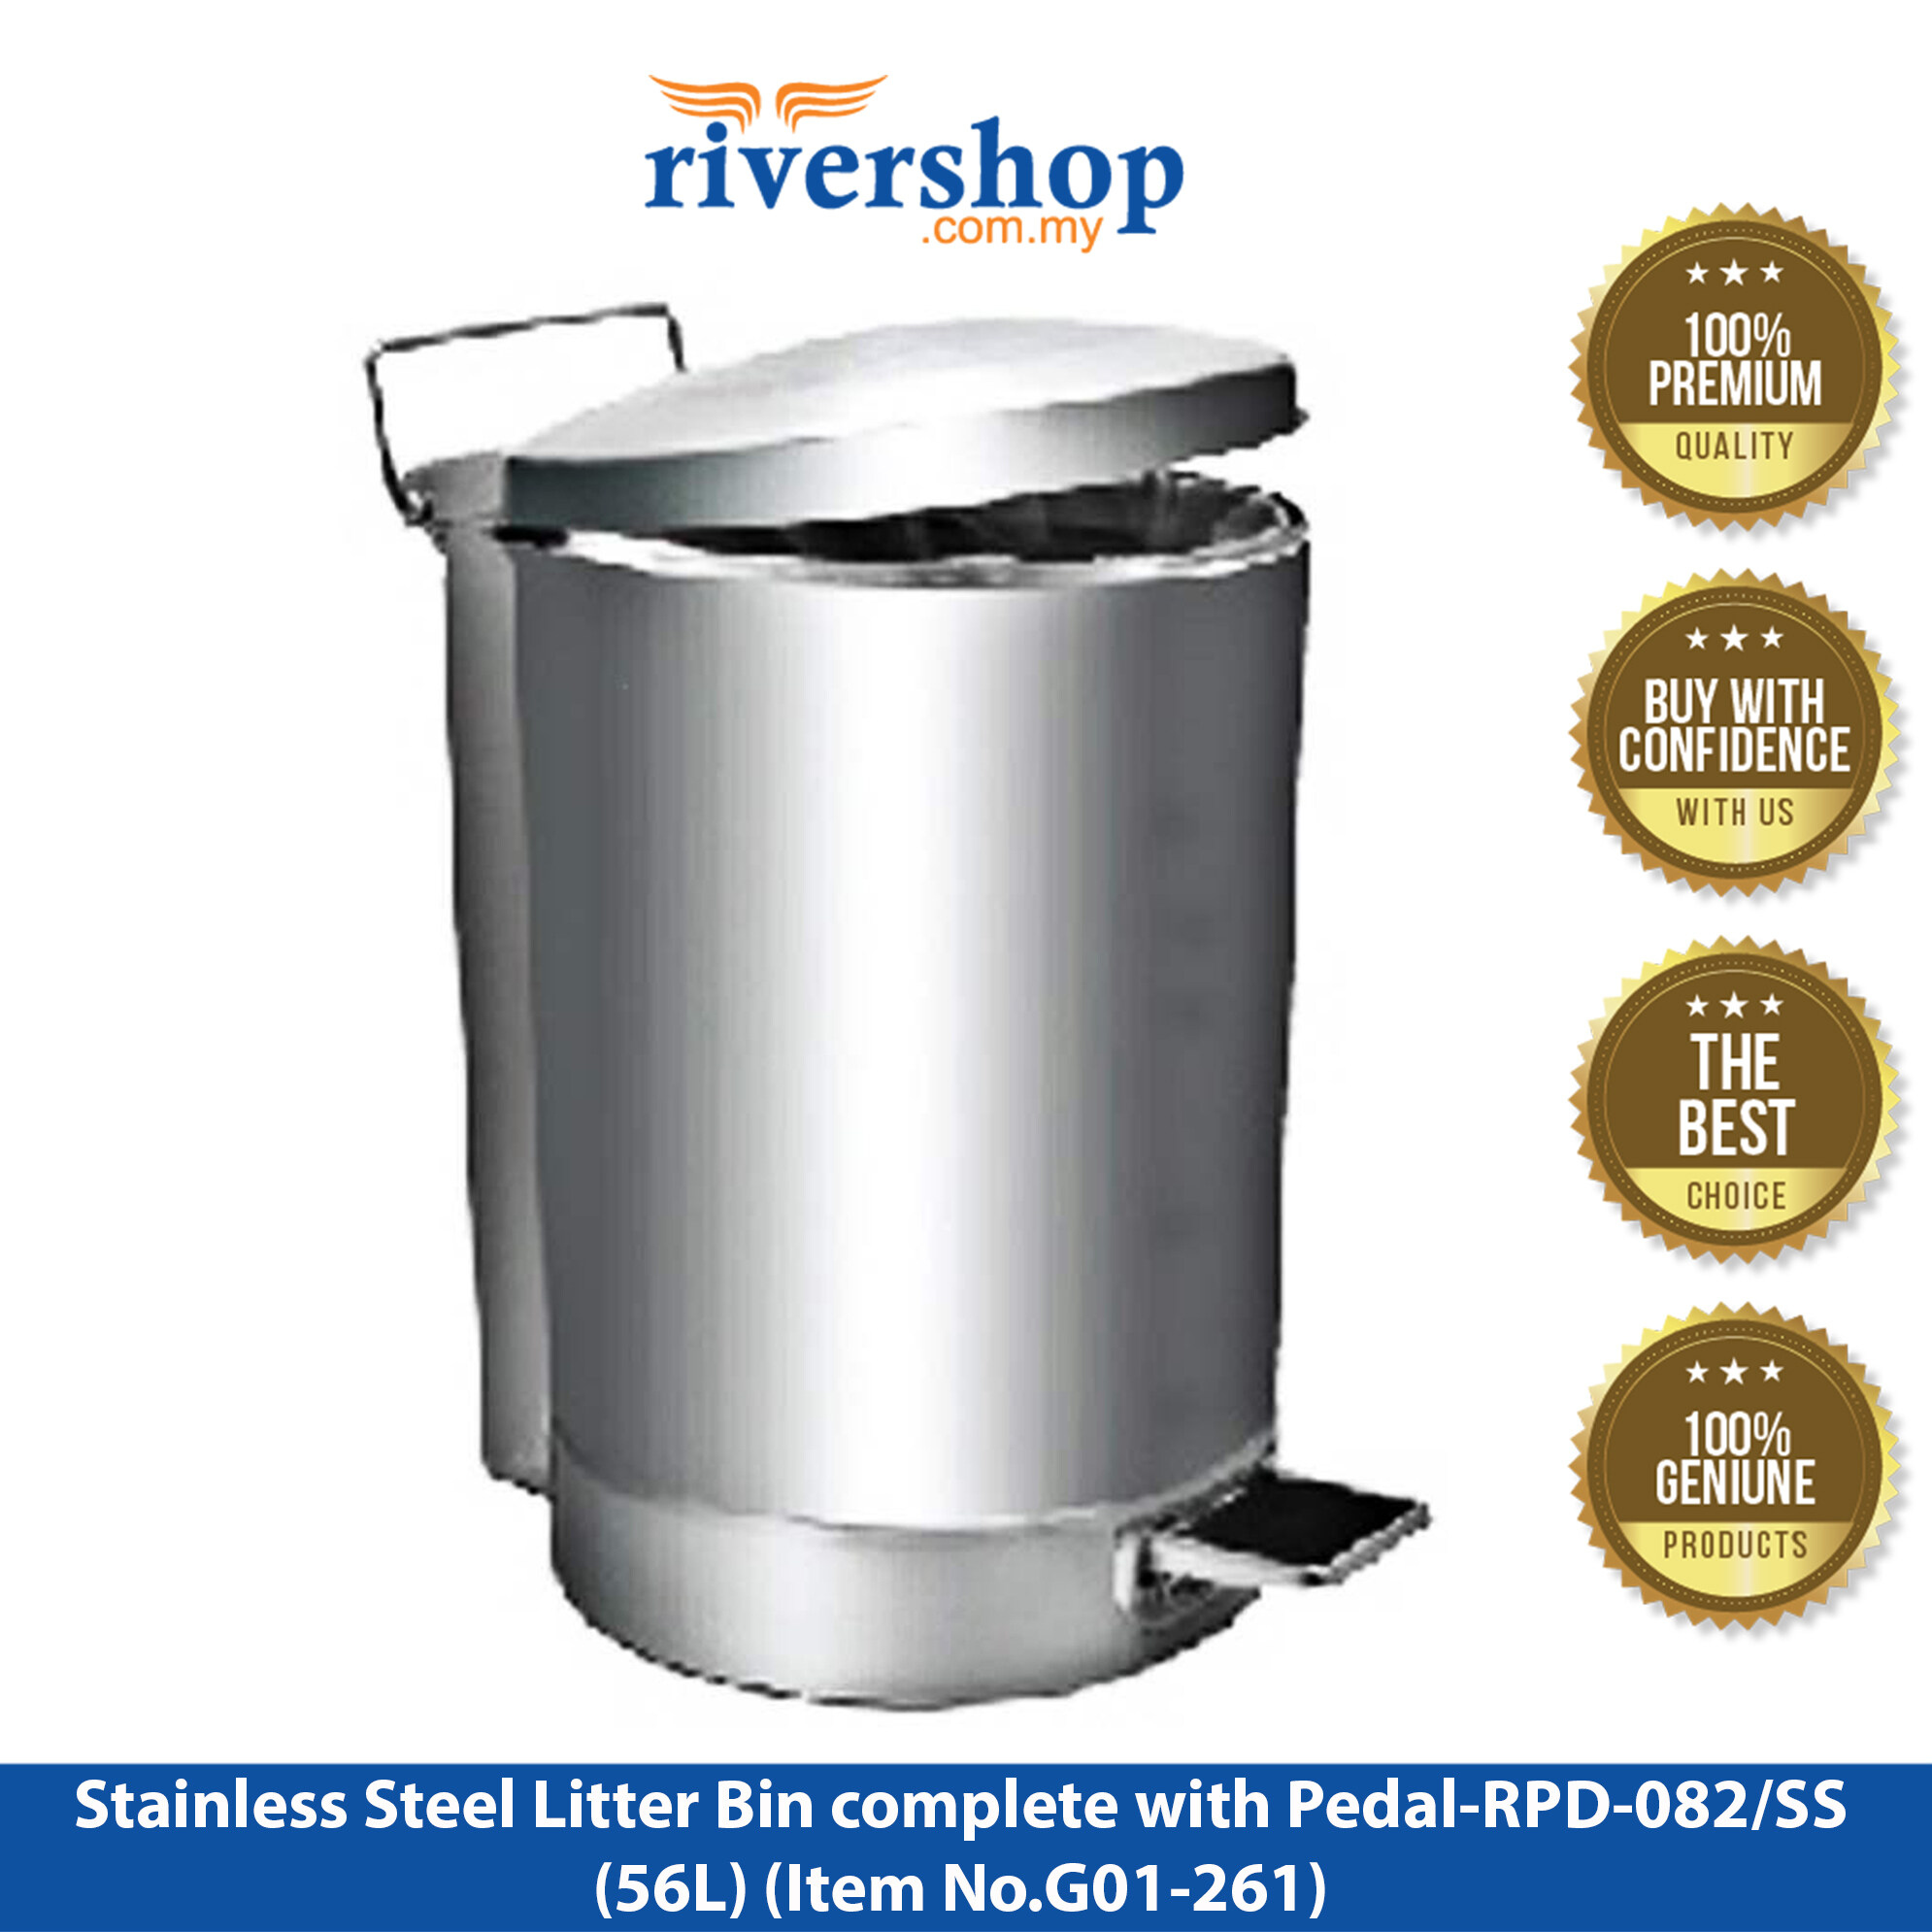 Stainless Steel Litter Bin complete with Pedal-RPD-082/SS (56L) (Item No.G01-261)